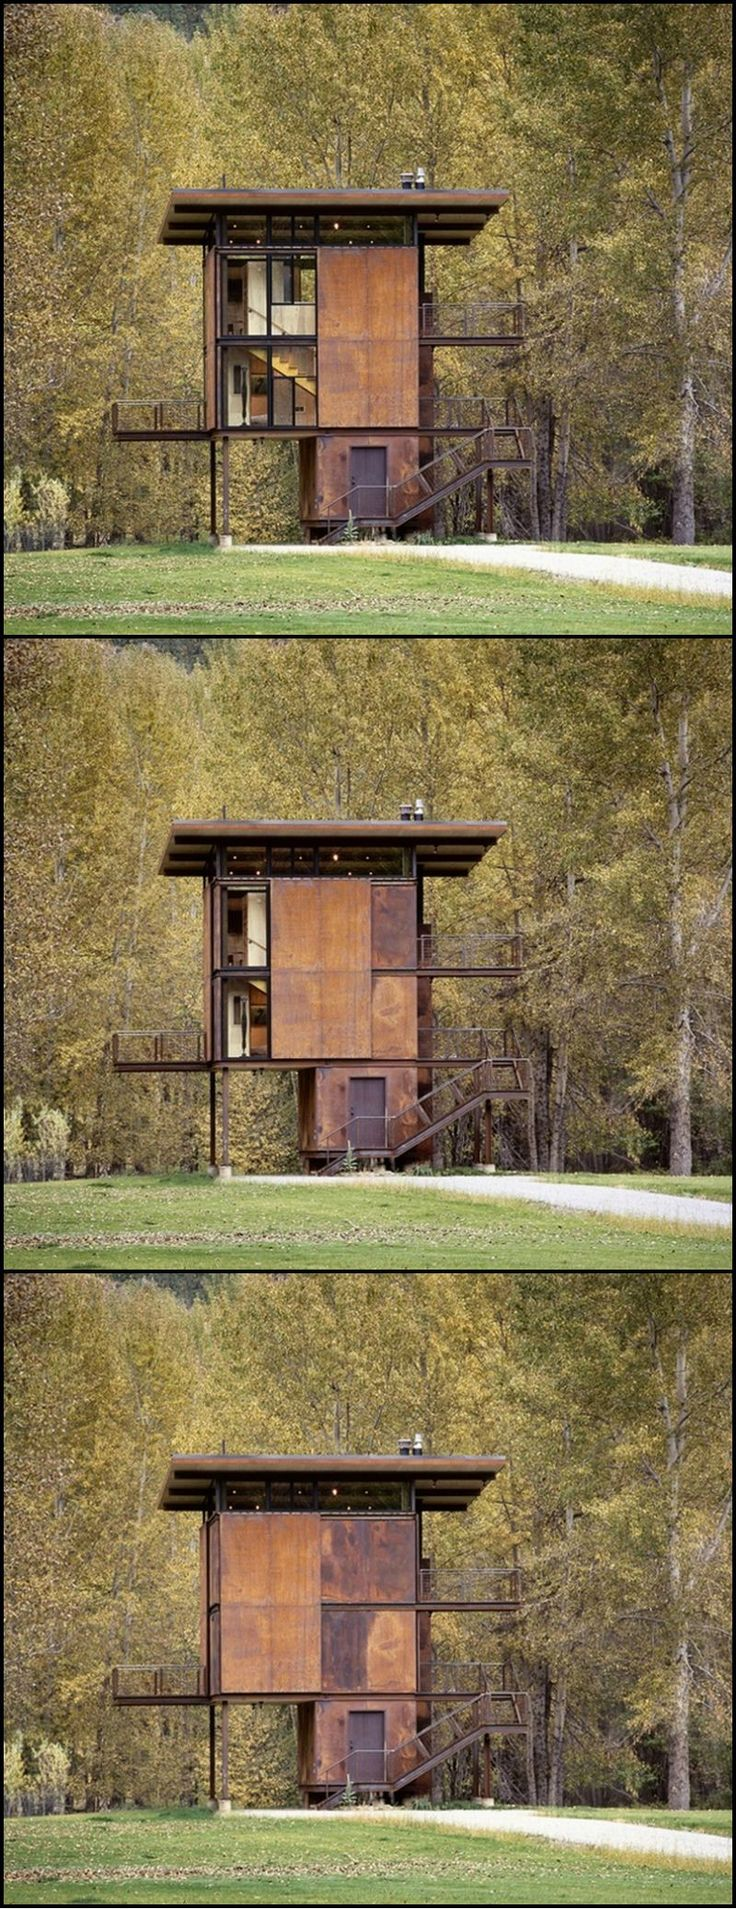 87 best stilt houses images on pinterest architecture homes and